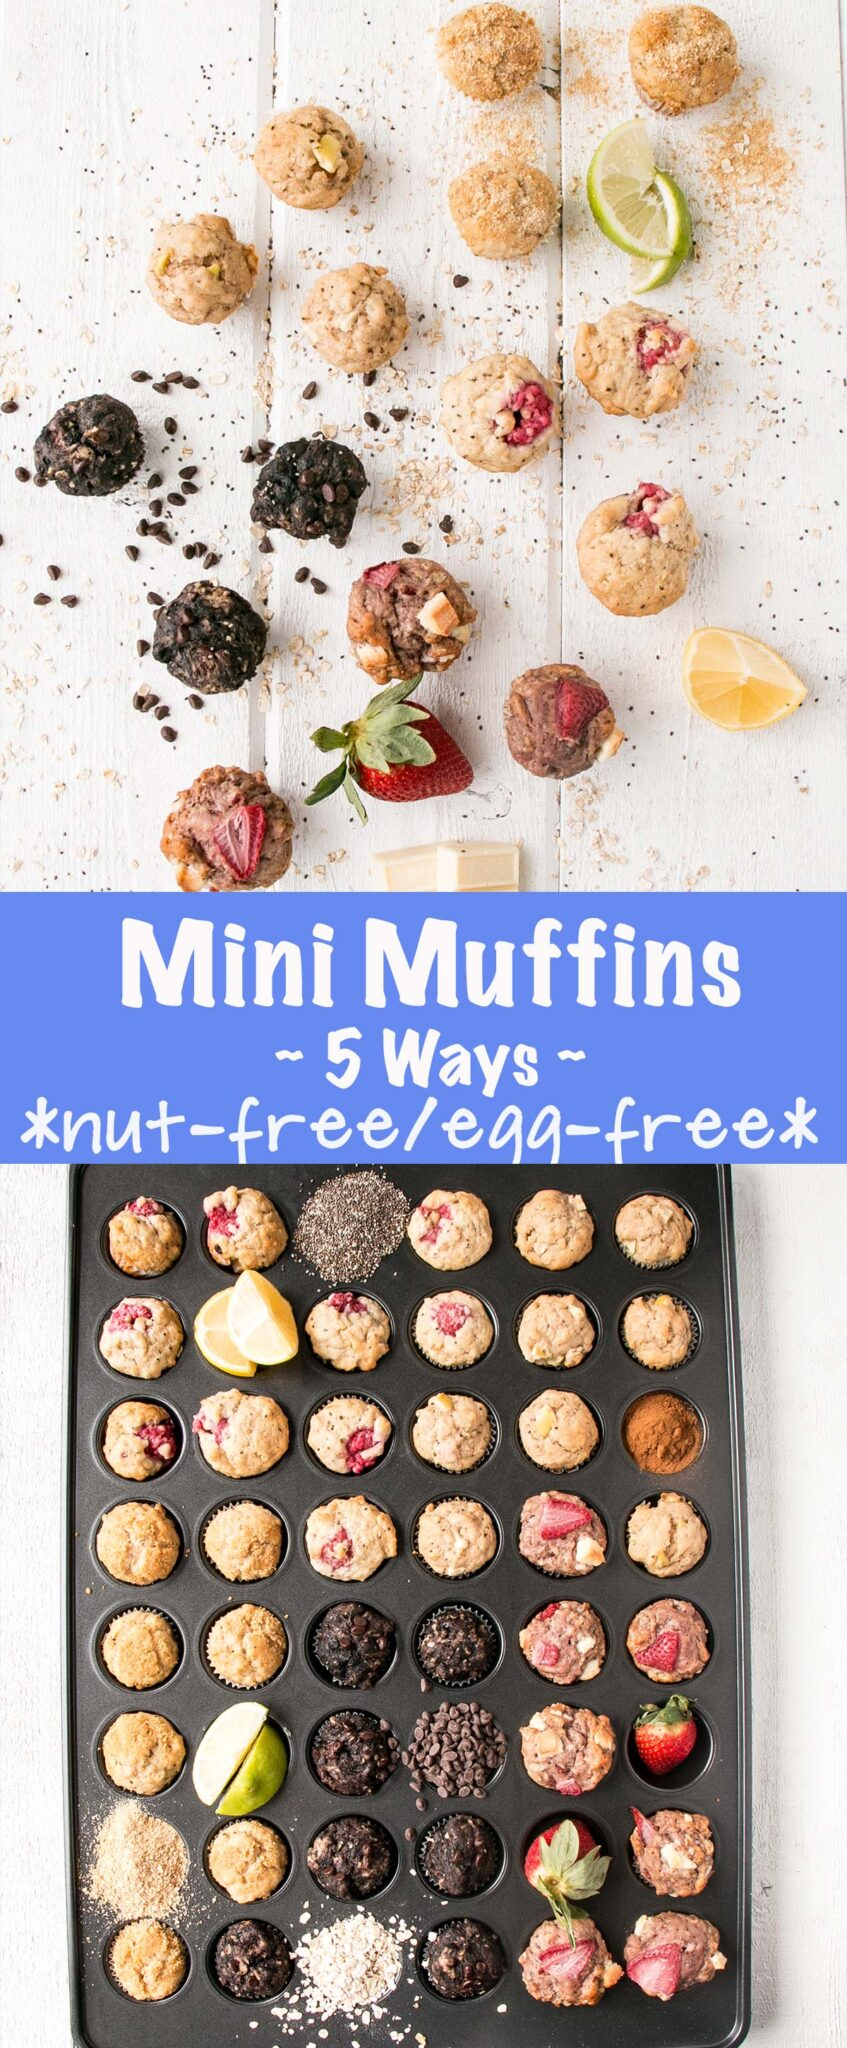 Mini Muffins 5 Ways are nut-free and egg-free making them perfect for school snacks and lunches. Or use as a way to pep up snacking at work. #muffins #schoolsafe #nutfree #eggfree